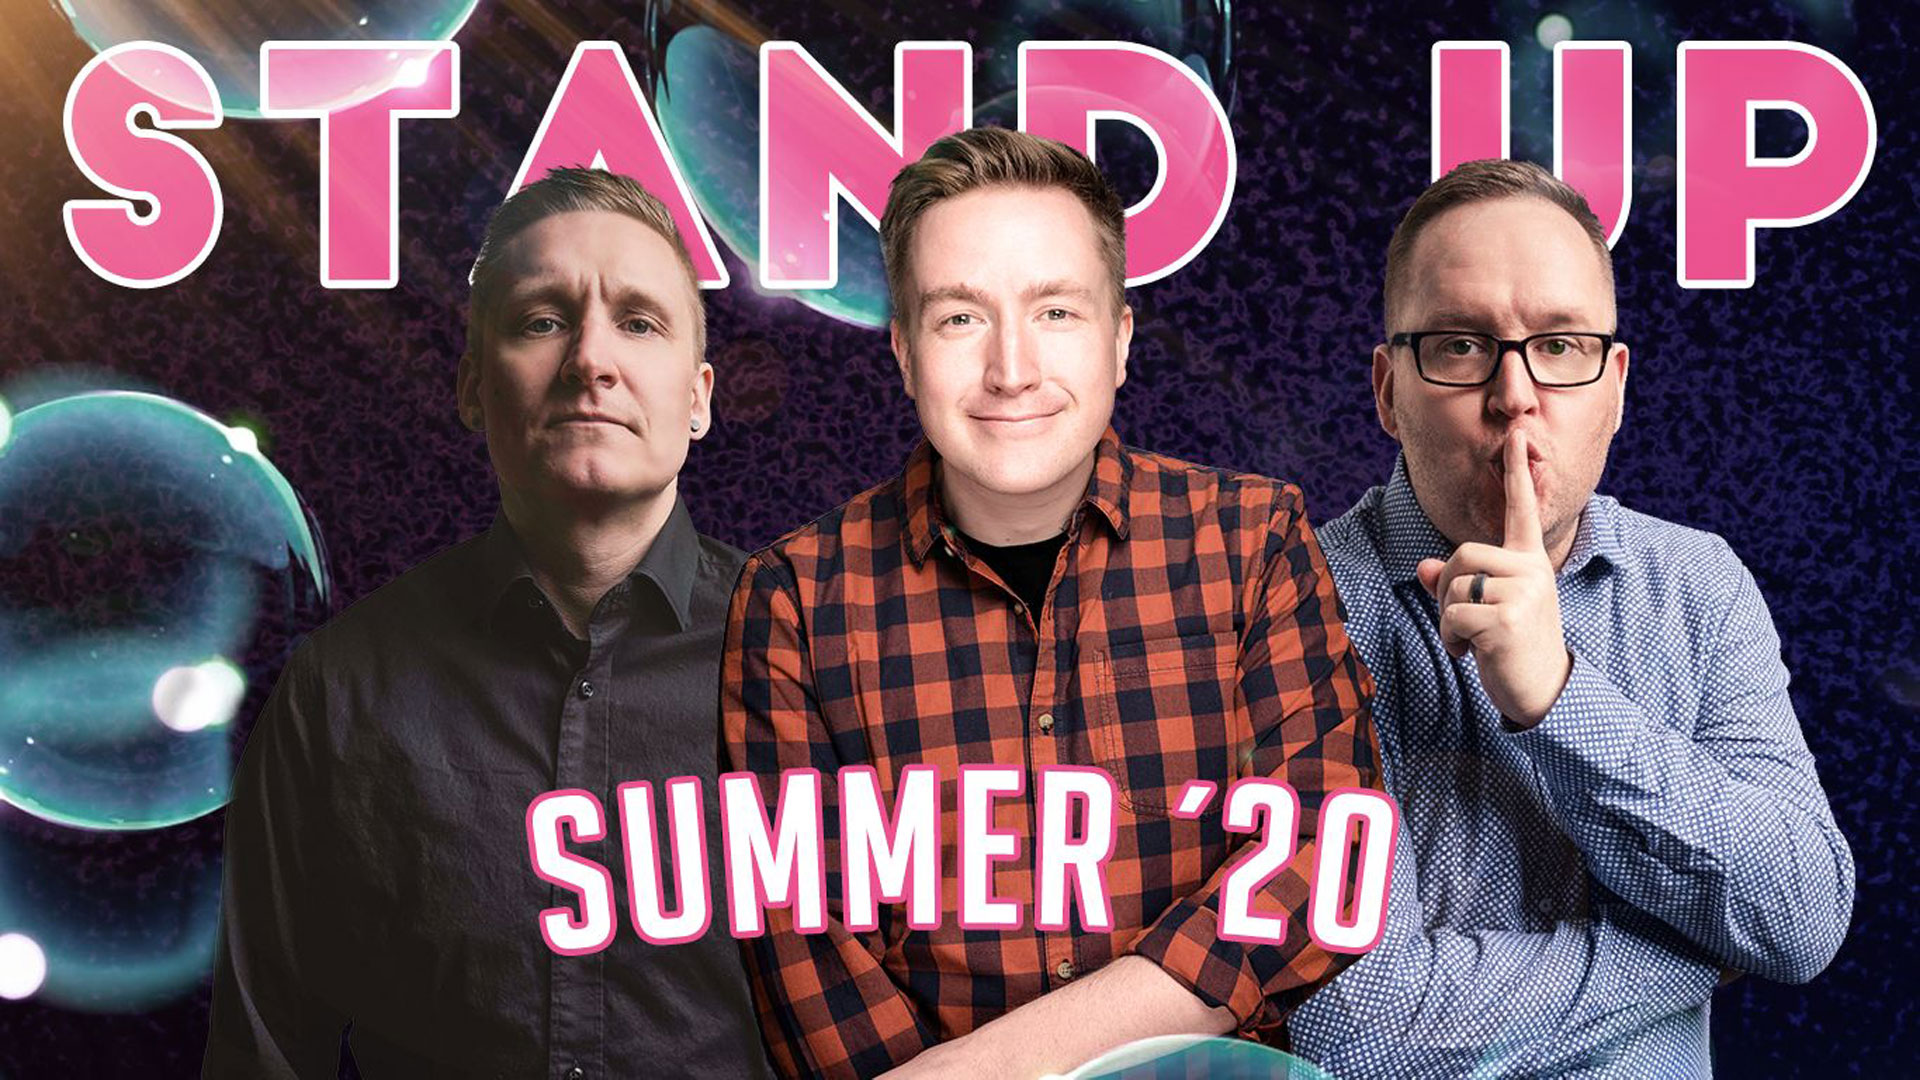 Stand Up Summer 2020 Show la 25.7.2020 klo 18.00